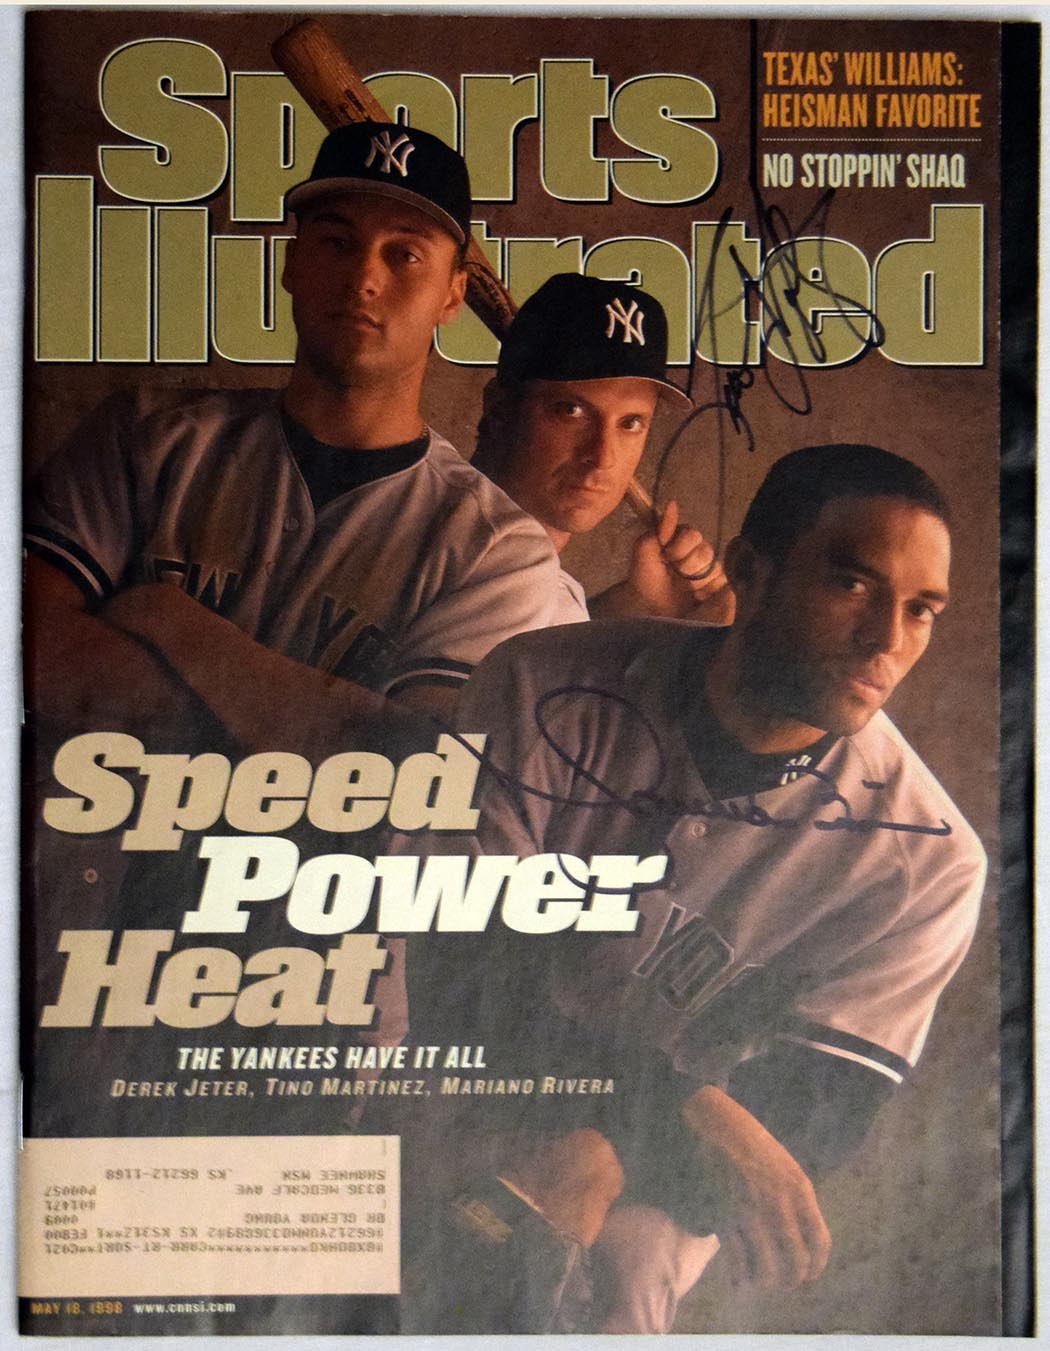 Lot #765  Program  Rivera/Tino Martinez Signed 1998 S.I. Cond: 9.5